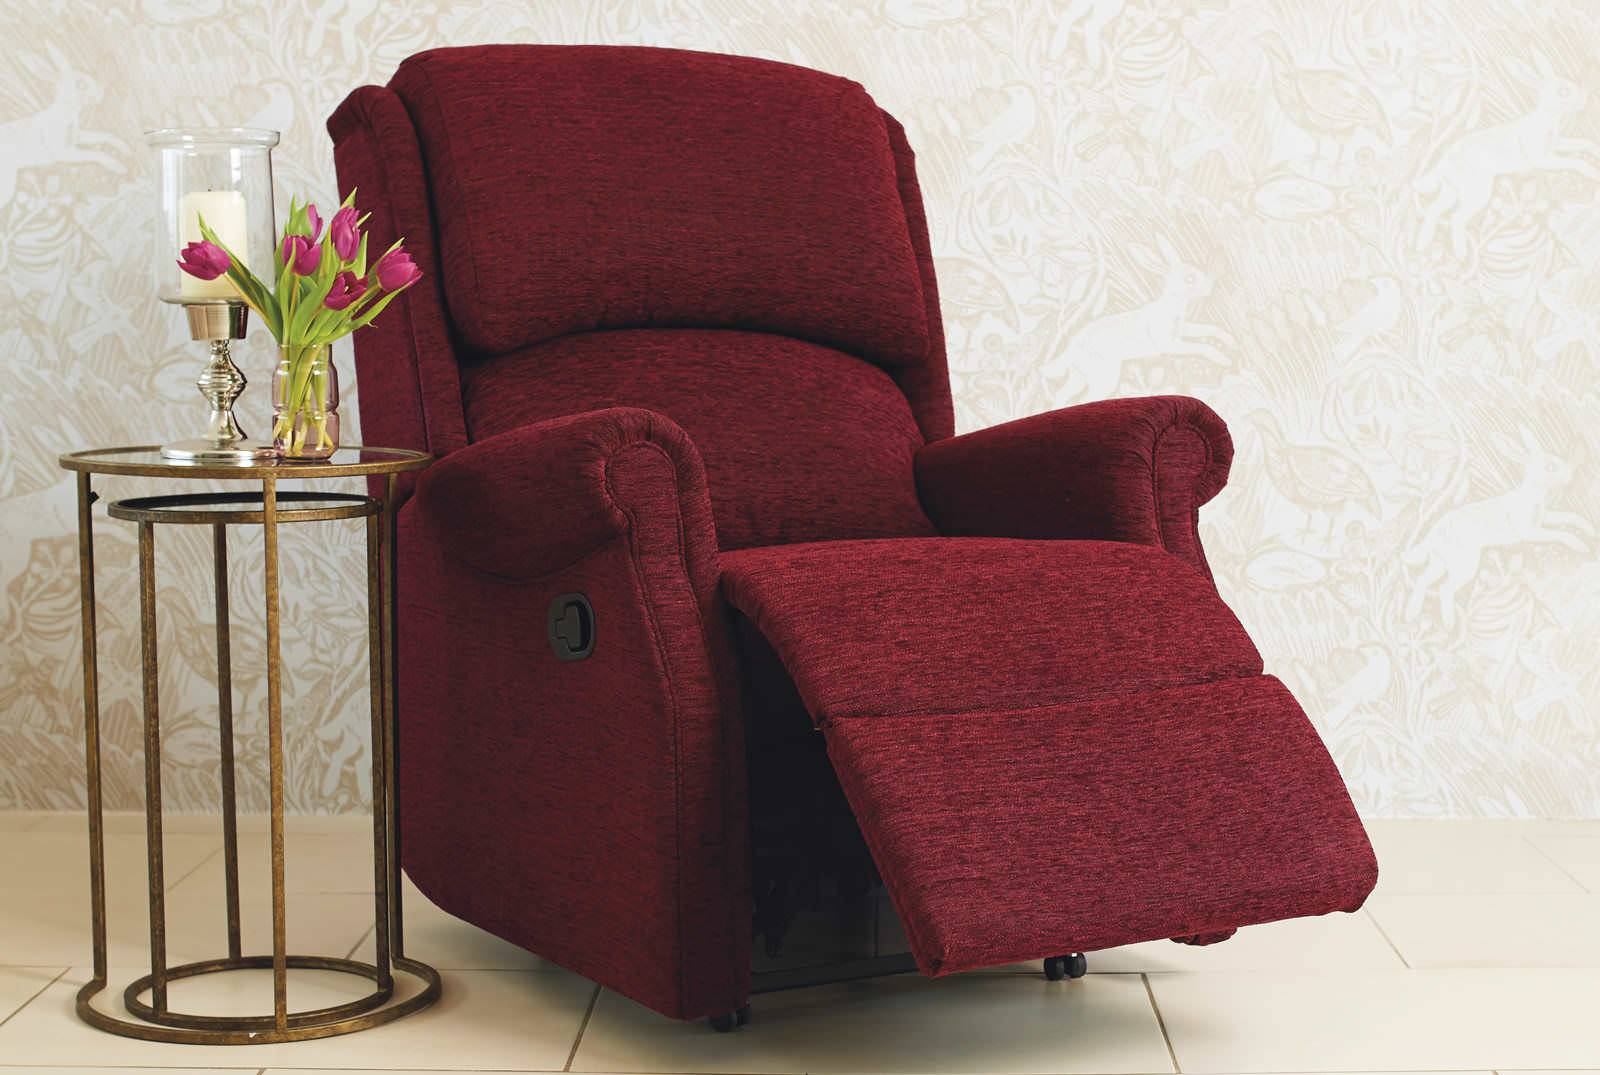 Berwick Catch Recliner in Vienna Plum